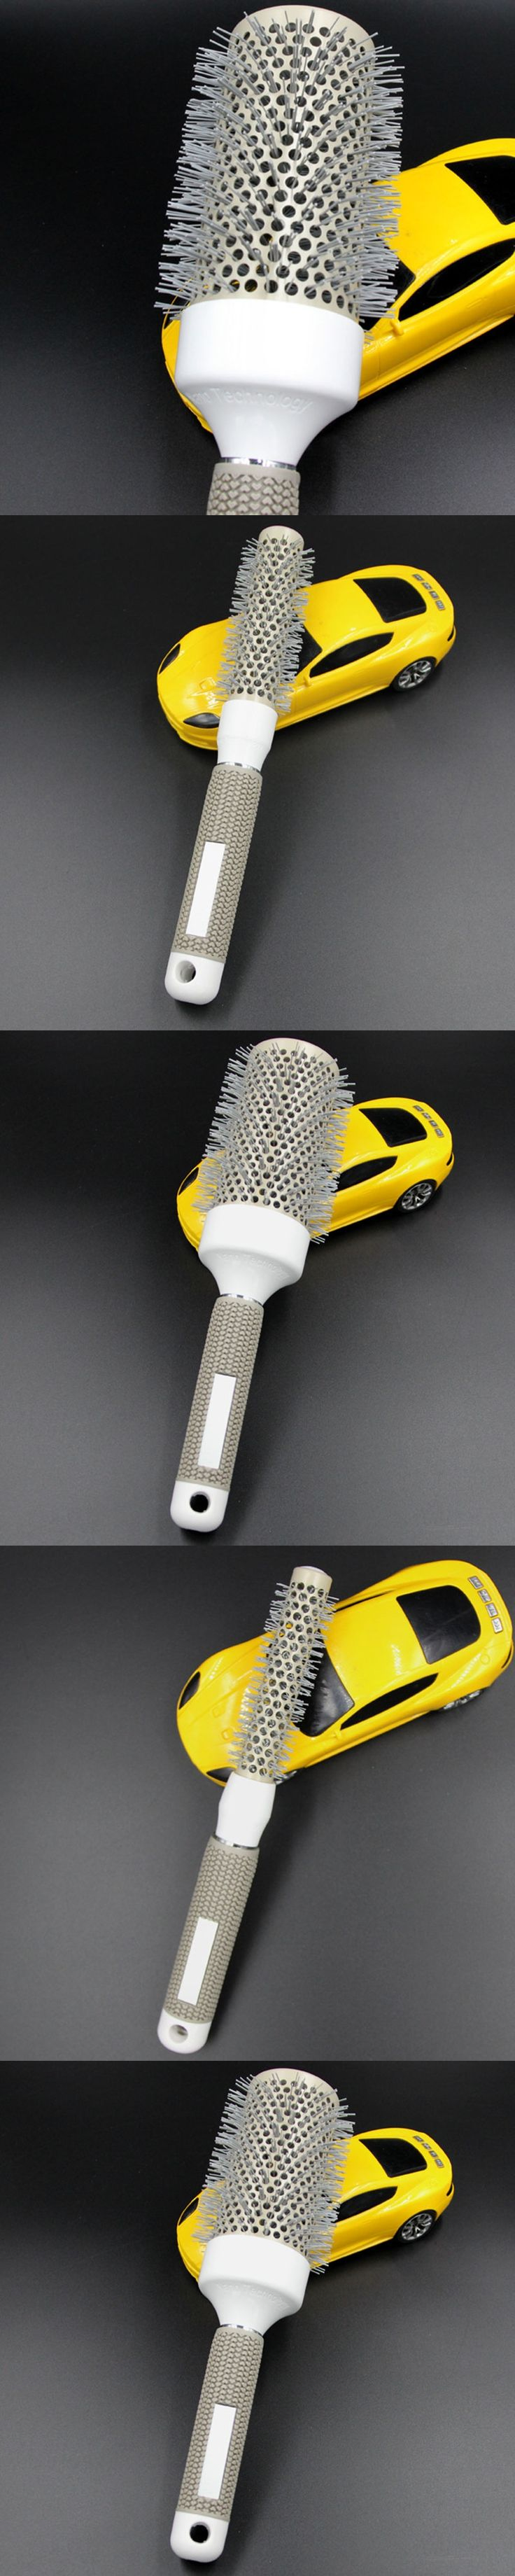 Lady Round Hair Brush Ceramic & Nylon Curly Hairbrush Massage Bomb Quiff Roller Comb Salon Hairdressing Styling Tools 25mm